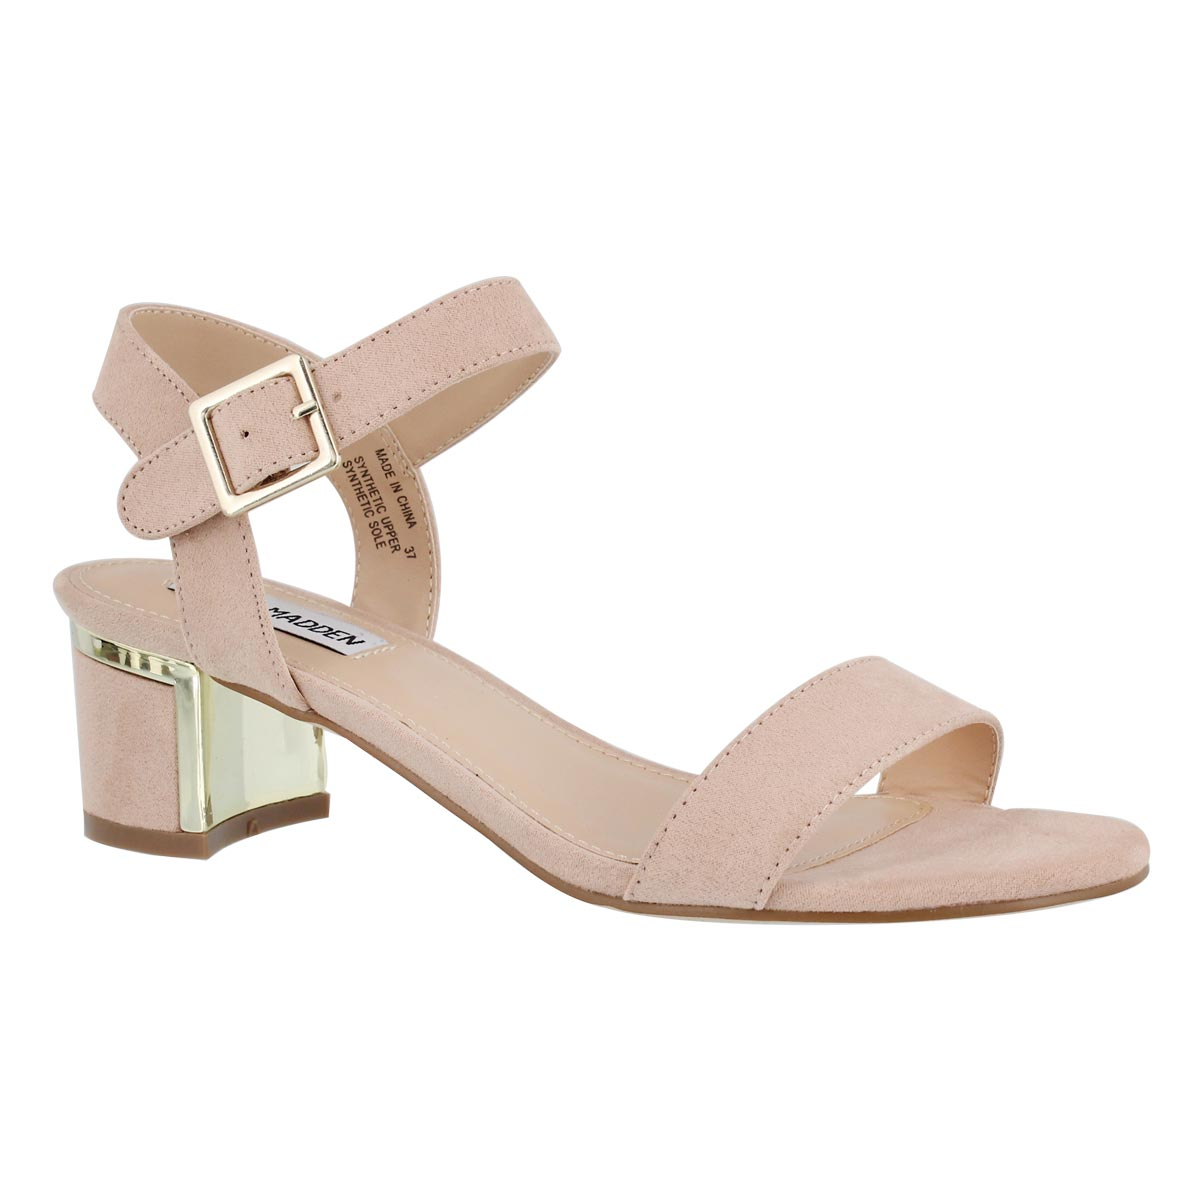 Women's DAINTY pink ankle strap dress sandals